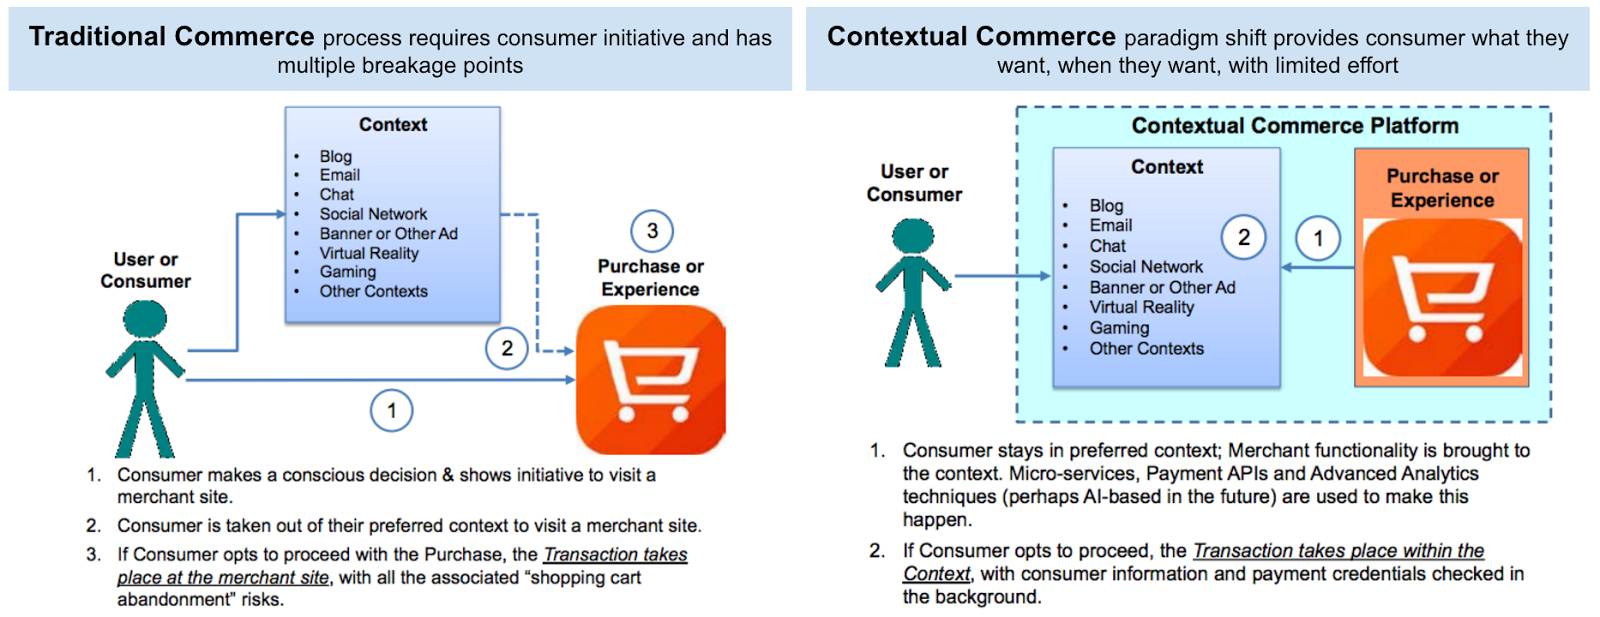 Contextual Commerce: From Single-Purpose Apps to All-in-One Platforms